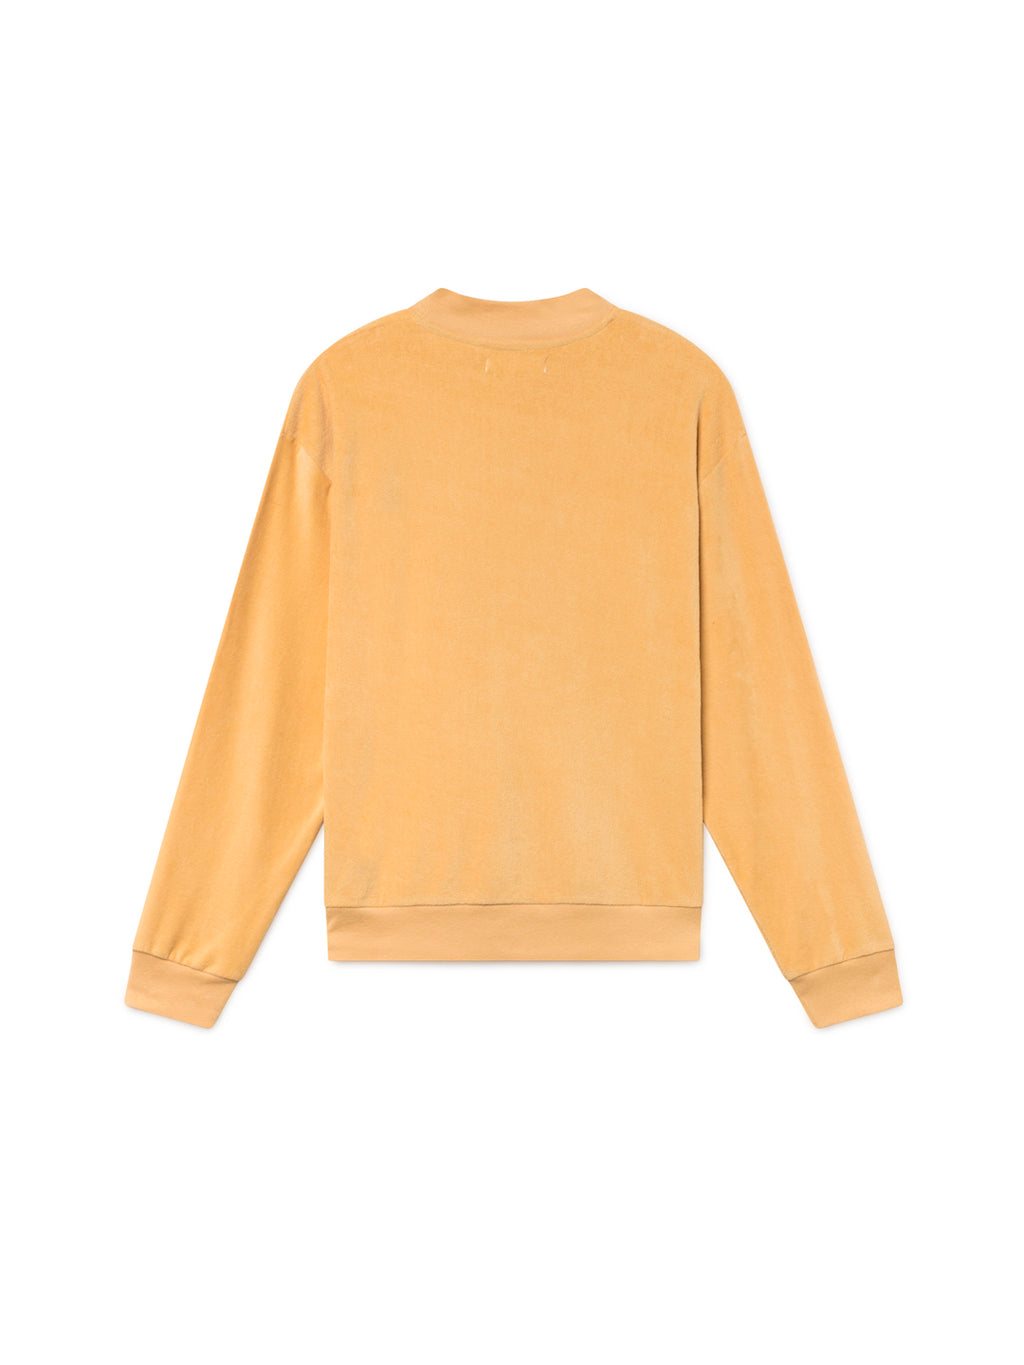 TWOTHIRDS Sweat: Kerguelen - Dusty Yellow